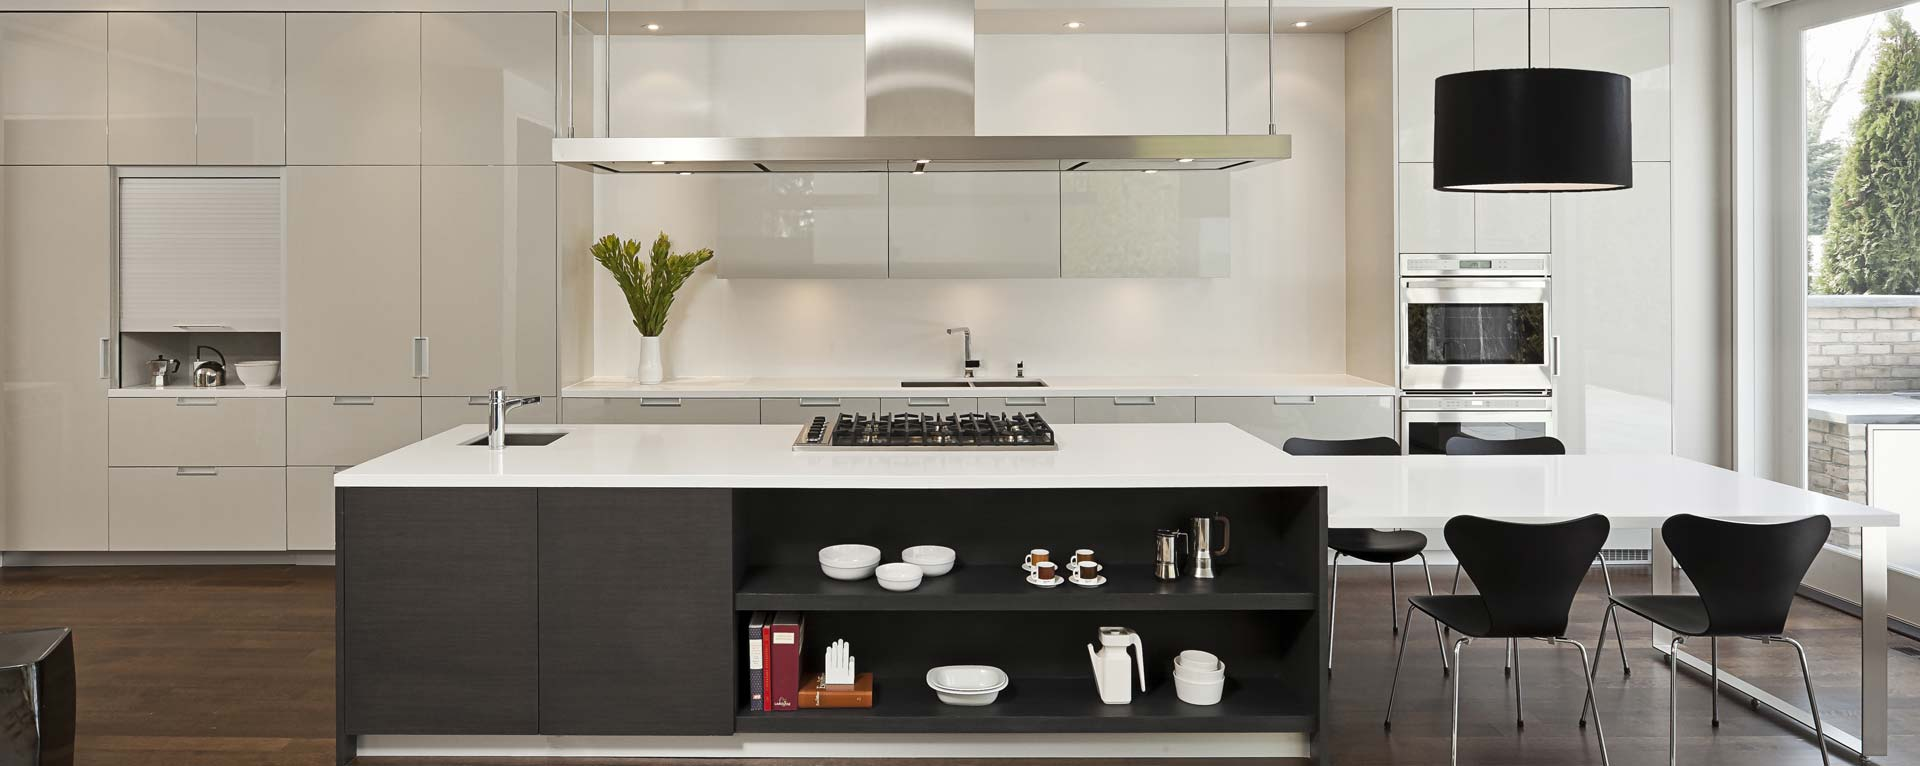 Glass door kitchen cabinet the home design inspirations for Artcraft kitchen cabinets